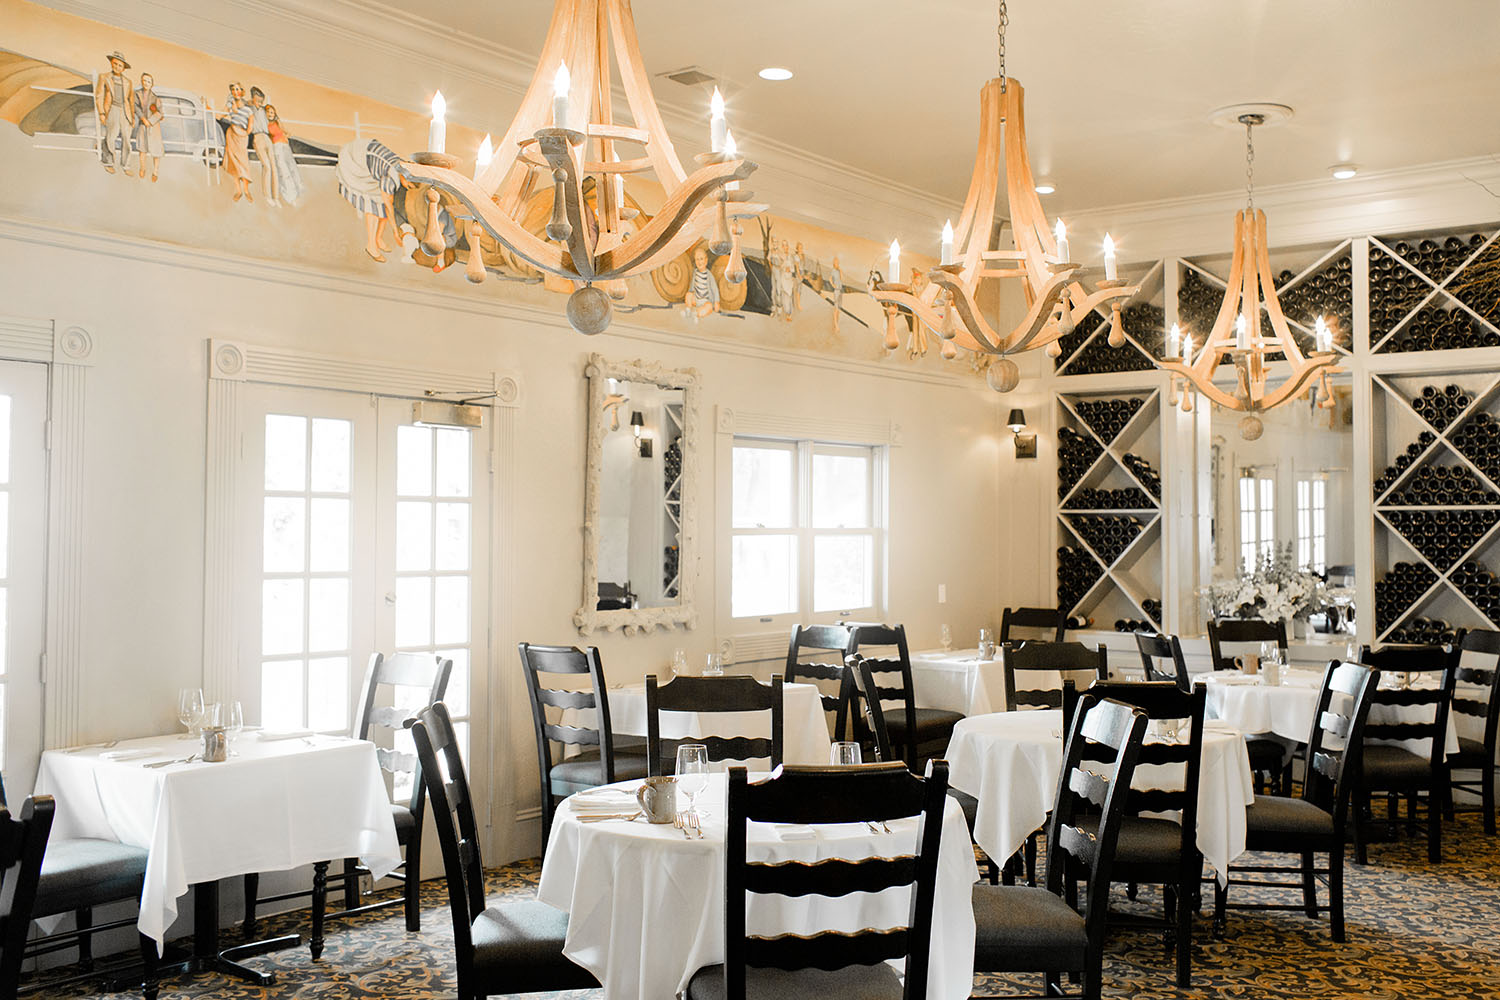 Farmhouse Restaurant Interior2-PS.jpg